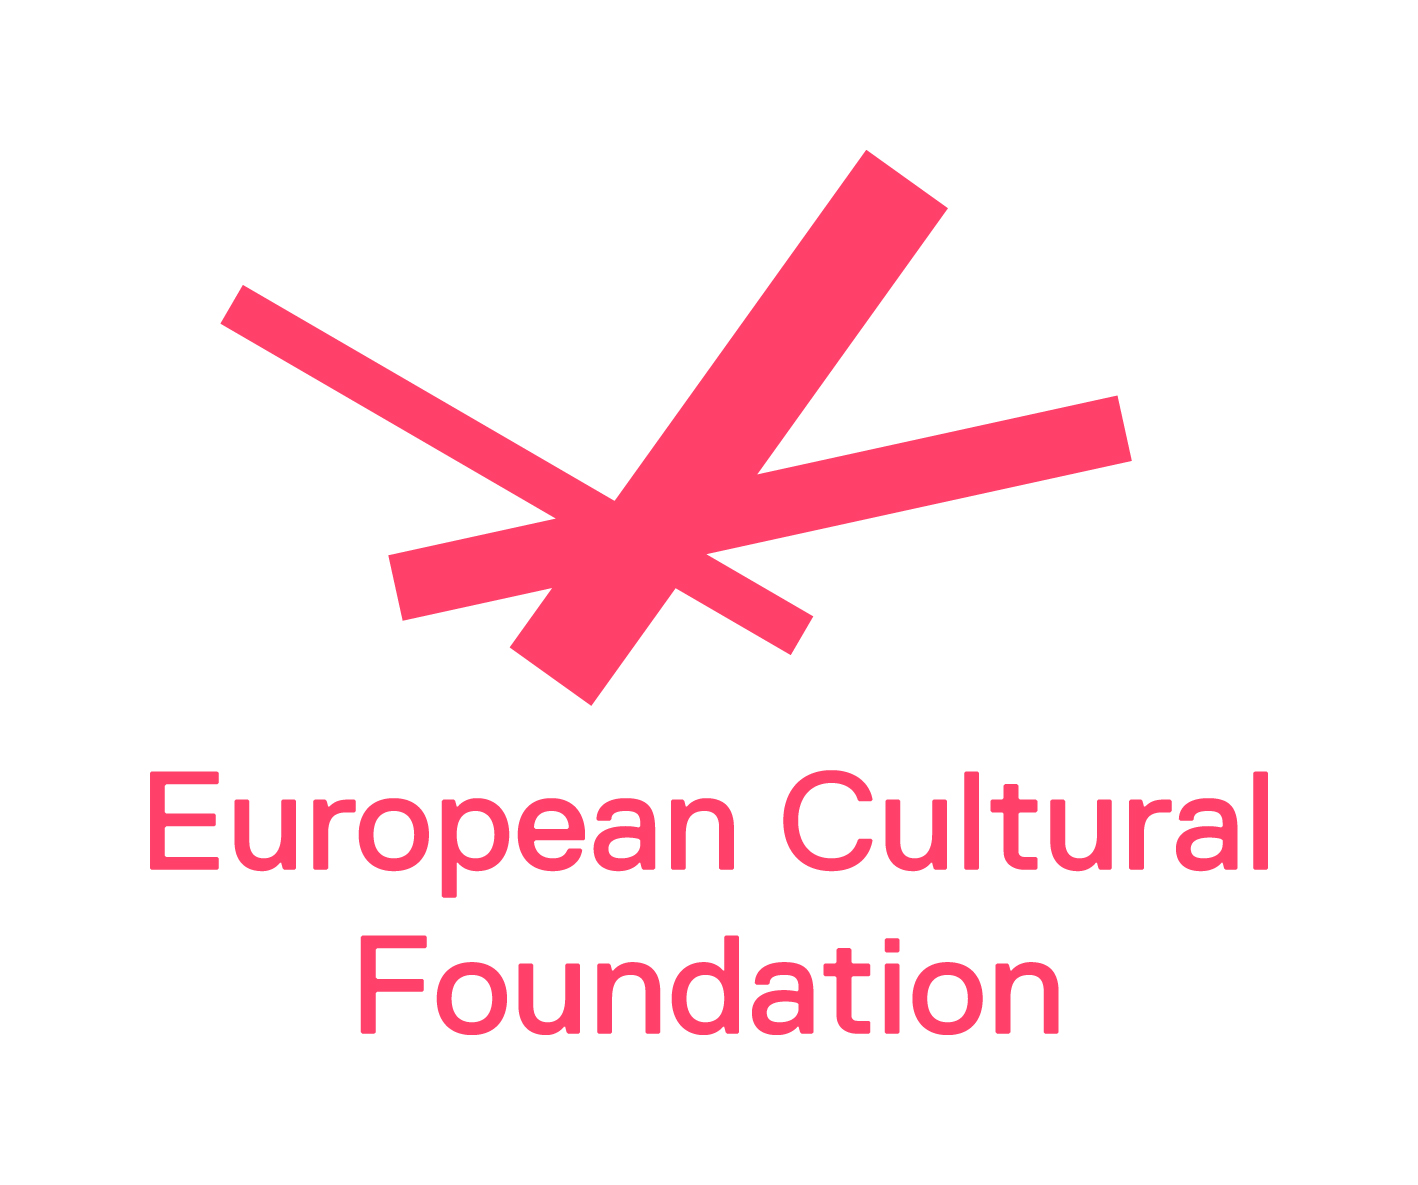 EU Cultural Foundation